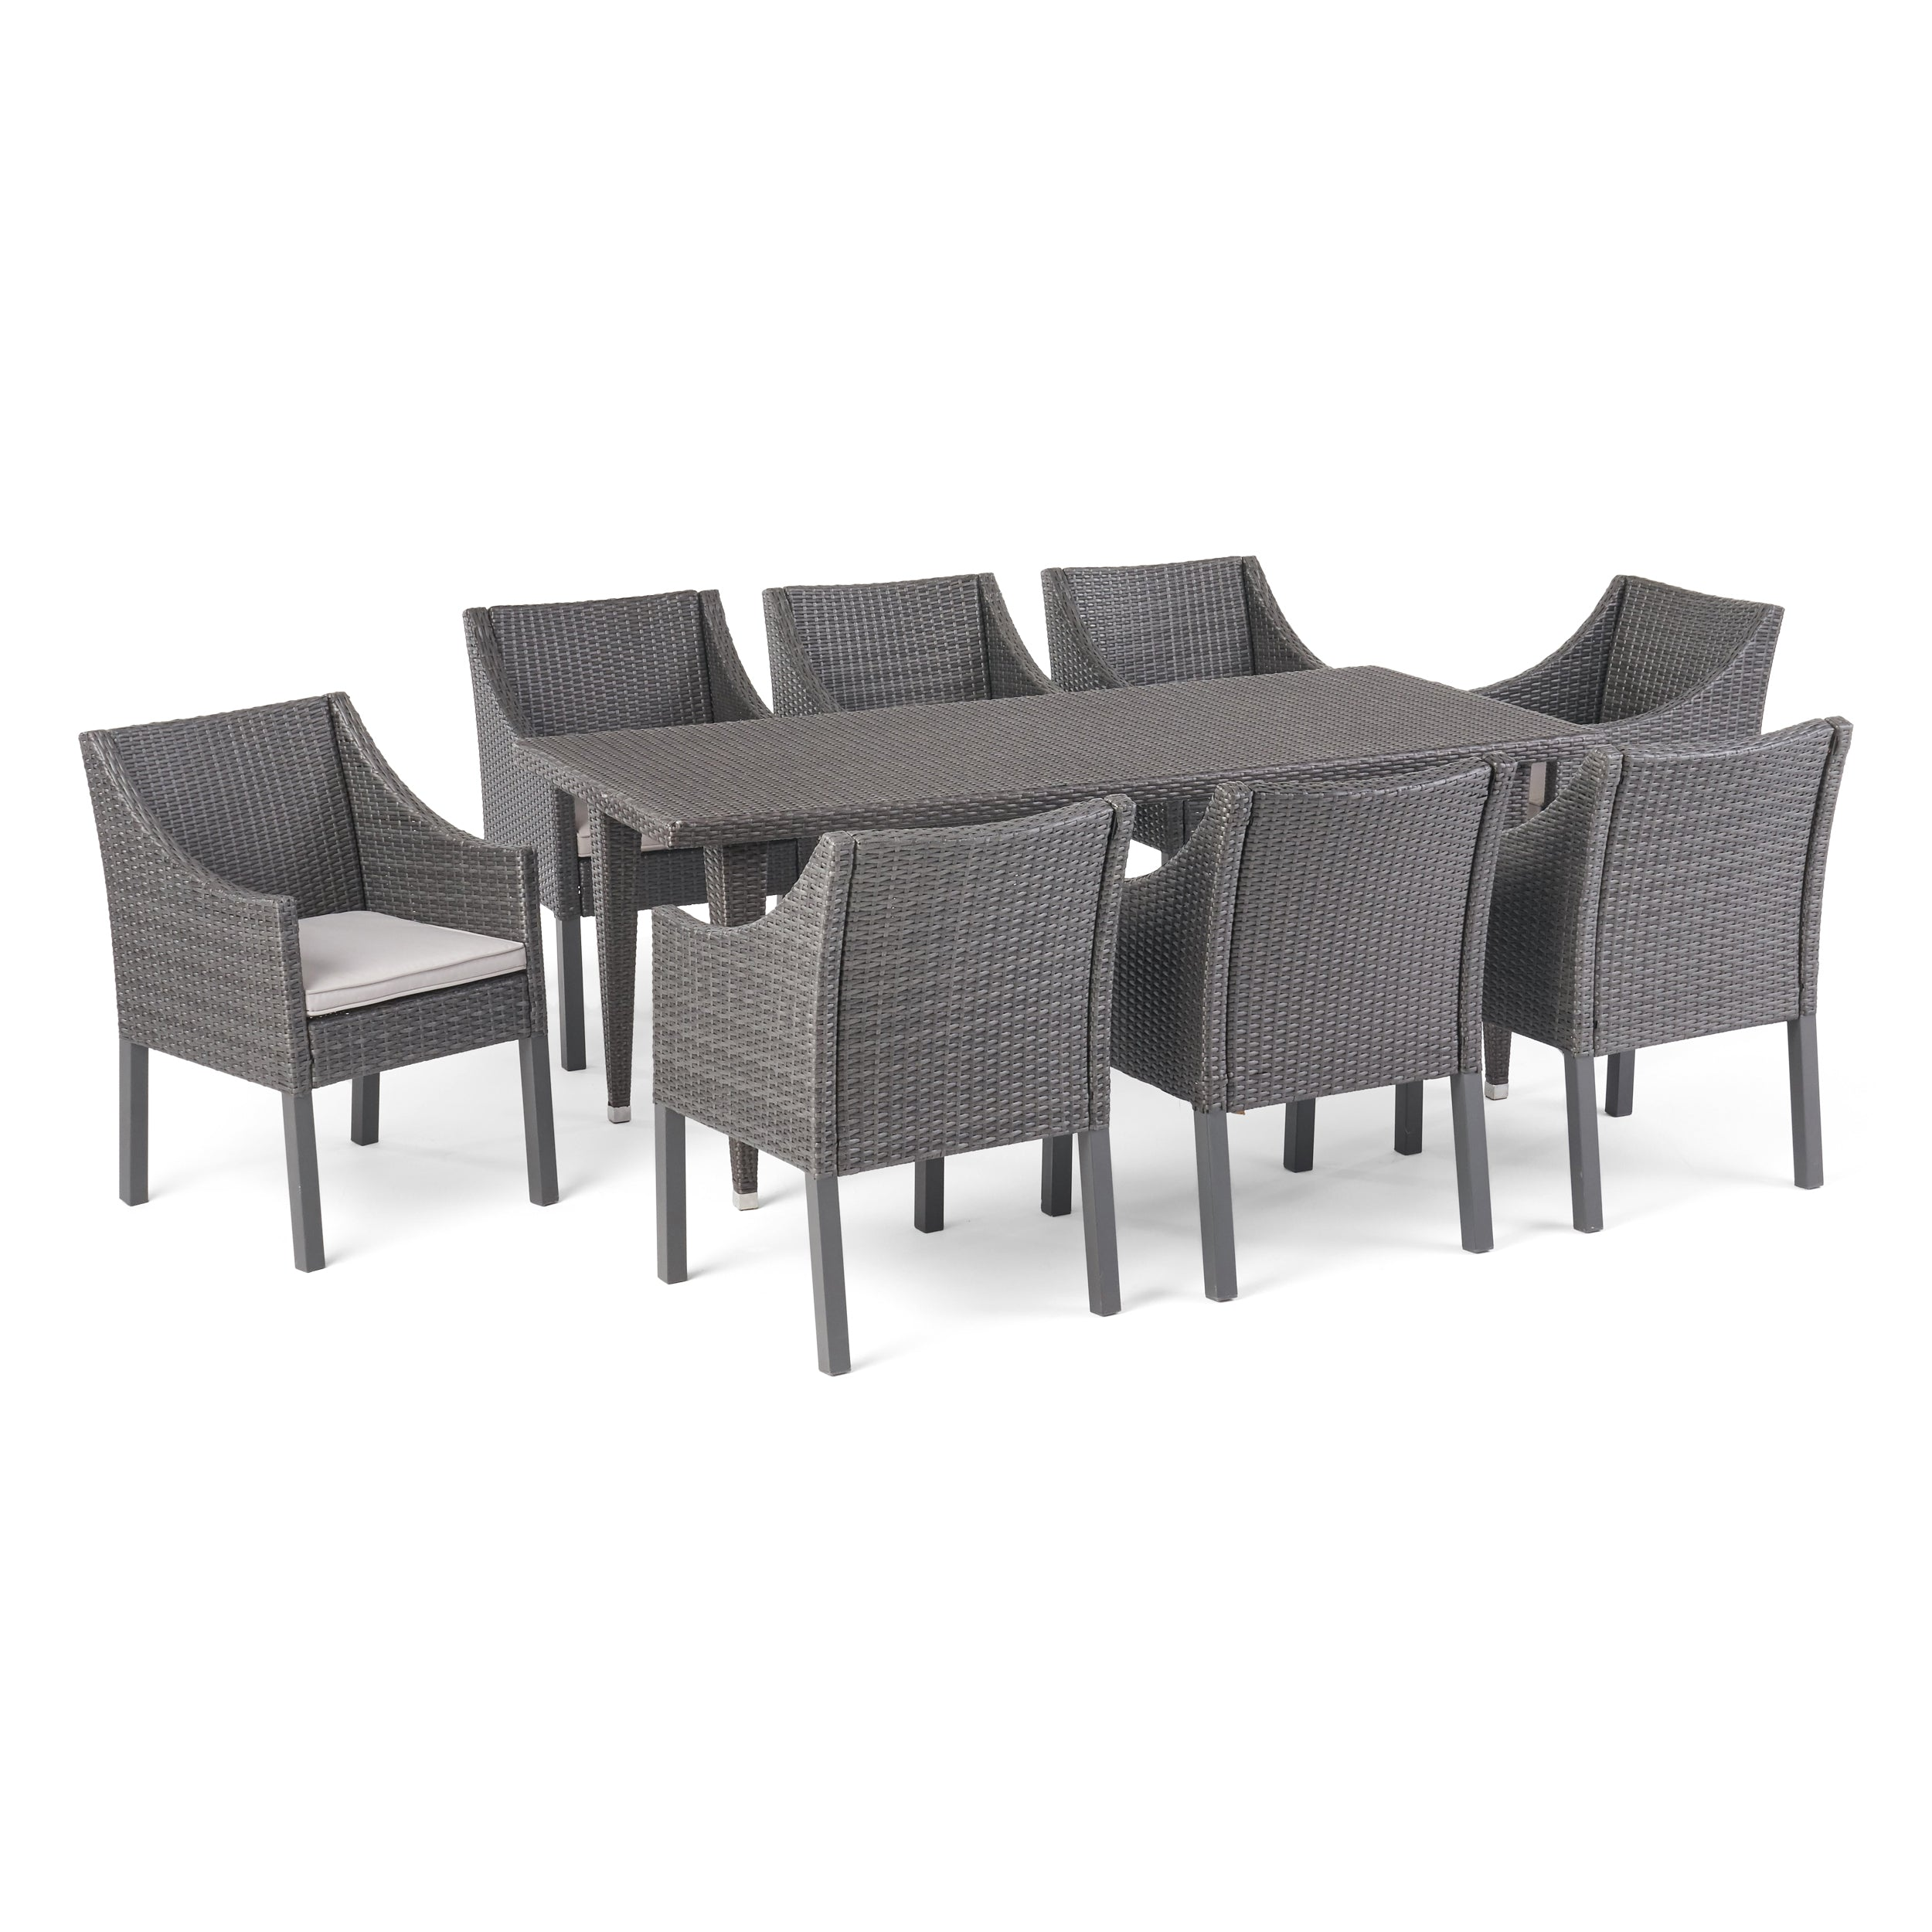 Alanna Outdoor 9 Piece Wicker Dining Set with Water Resistant Cushions GraySilver